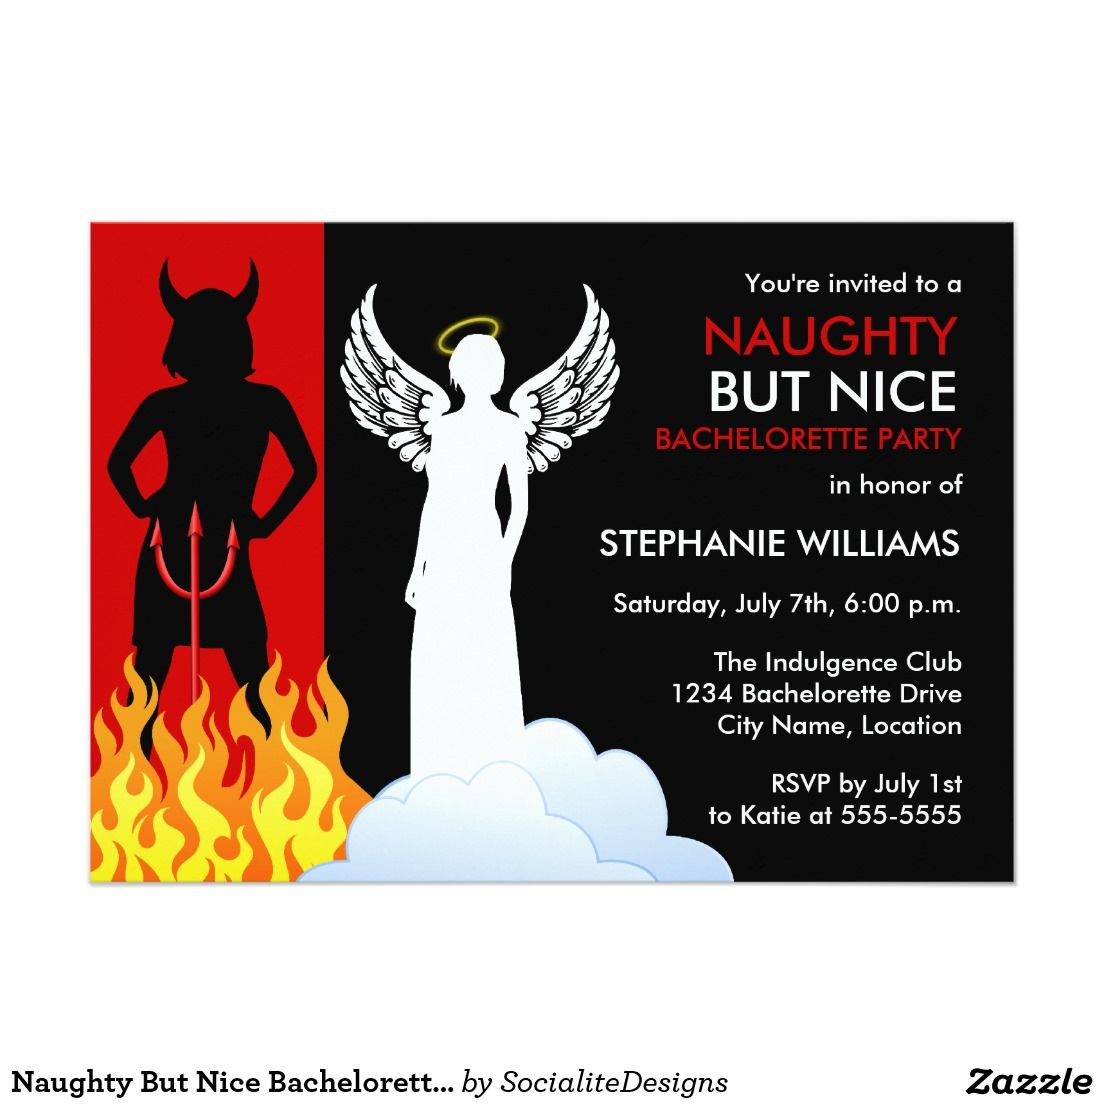 Naughty but nice bachelorette party invitation bachelorette parties naughty but nice bachelorette party invitation monicamarmolfo Image collections